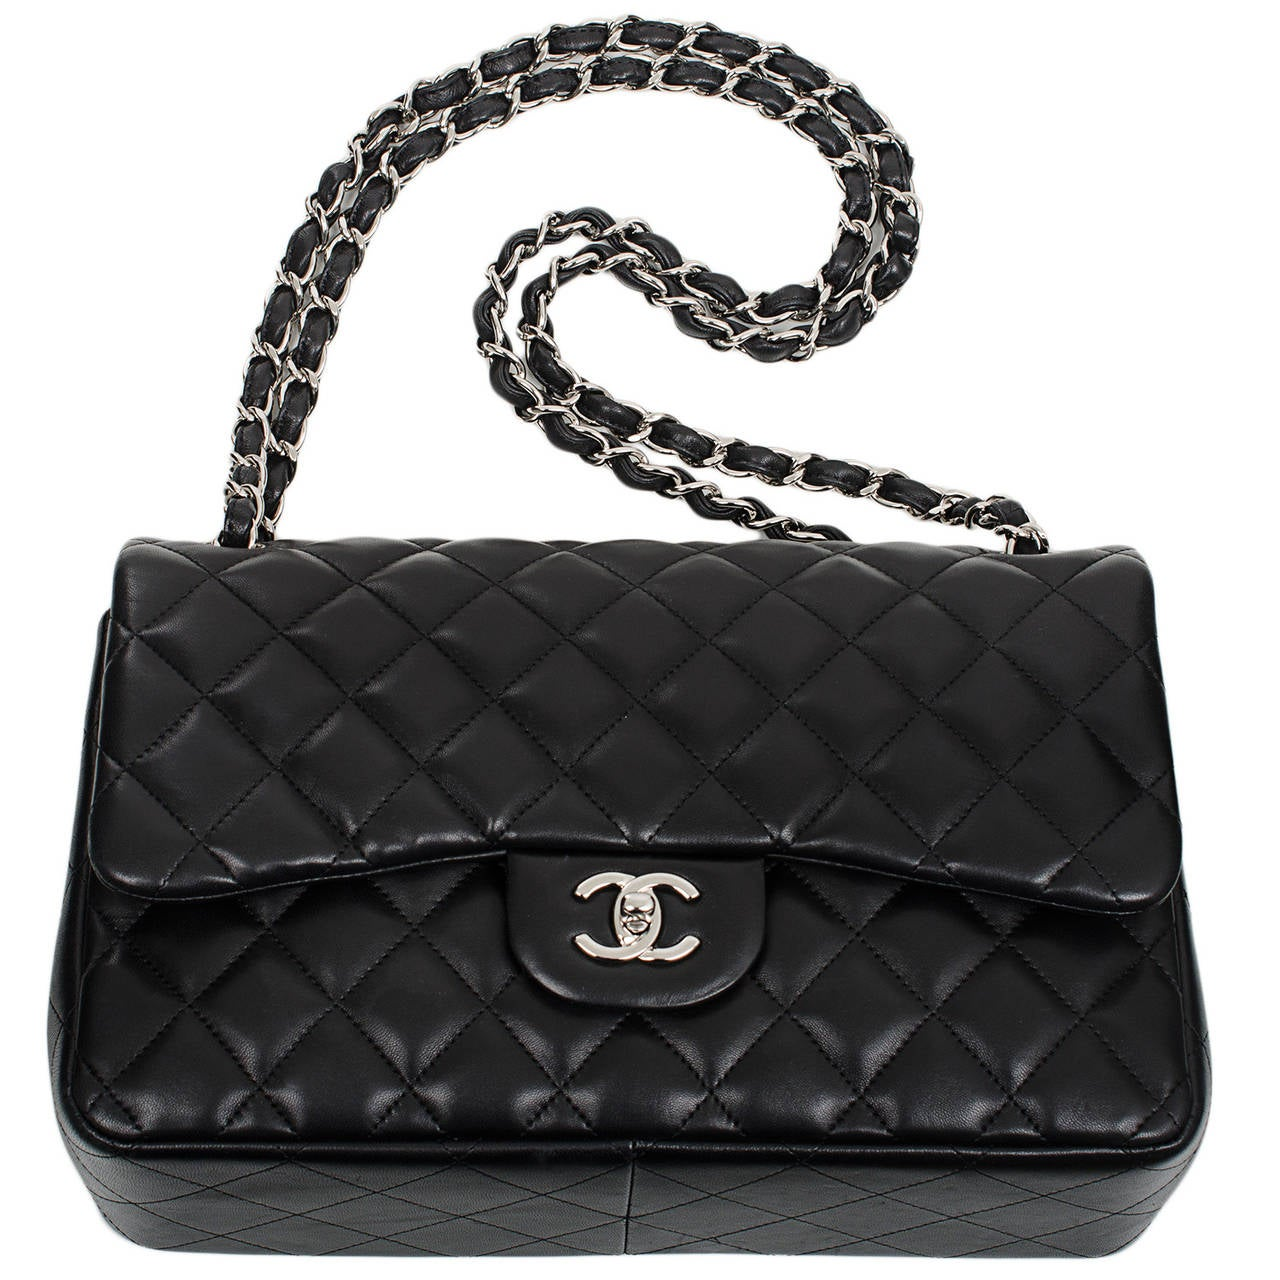 Chanel Black Quilted Lambskin Jumbo Classic Double Flap Bag For Sale 1